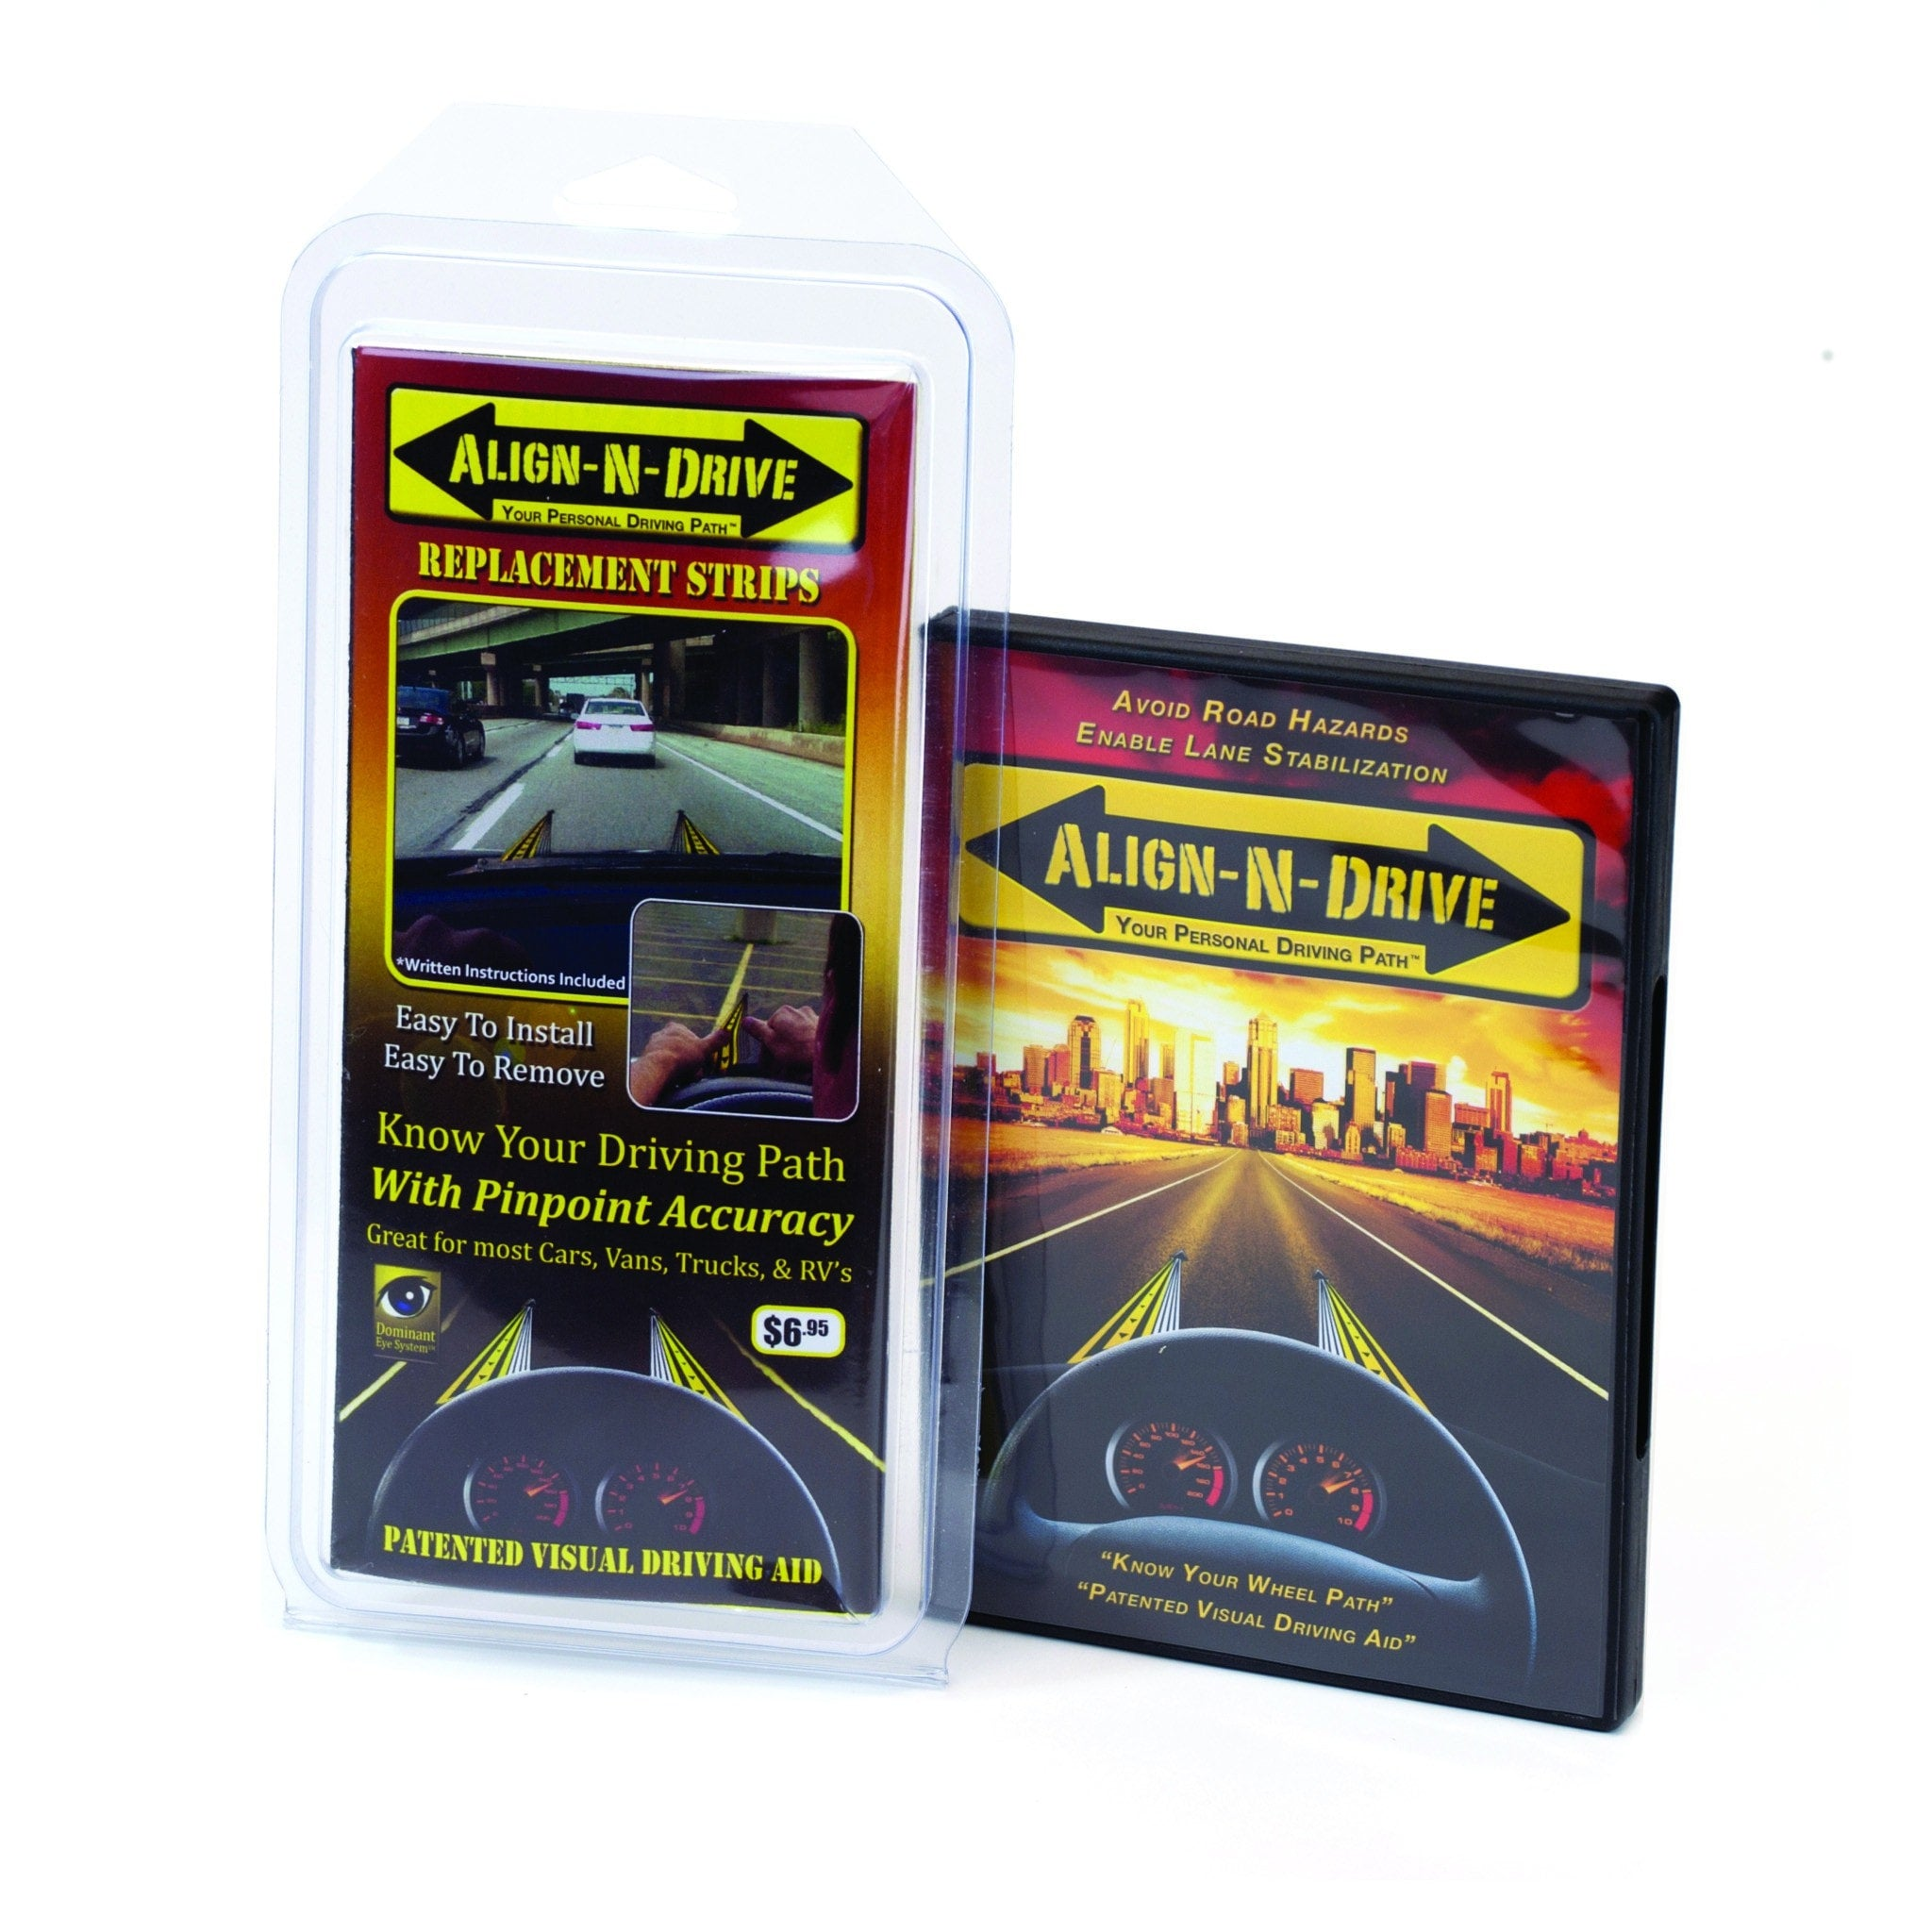 Align-N-Drive - New driver assistance kit